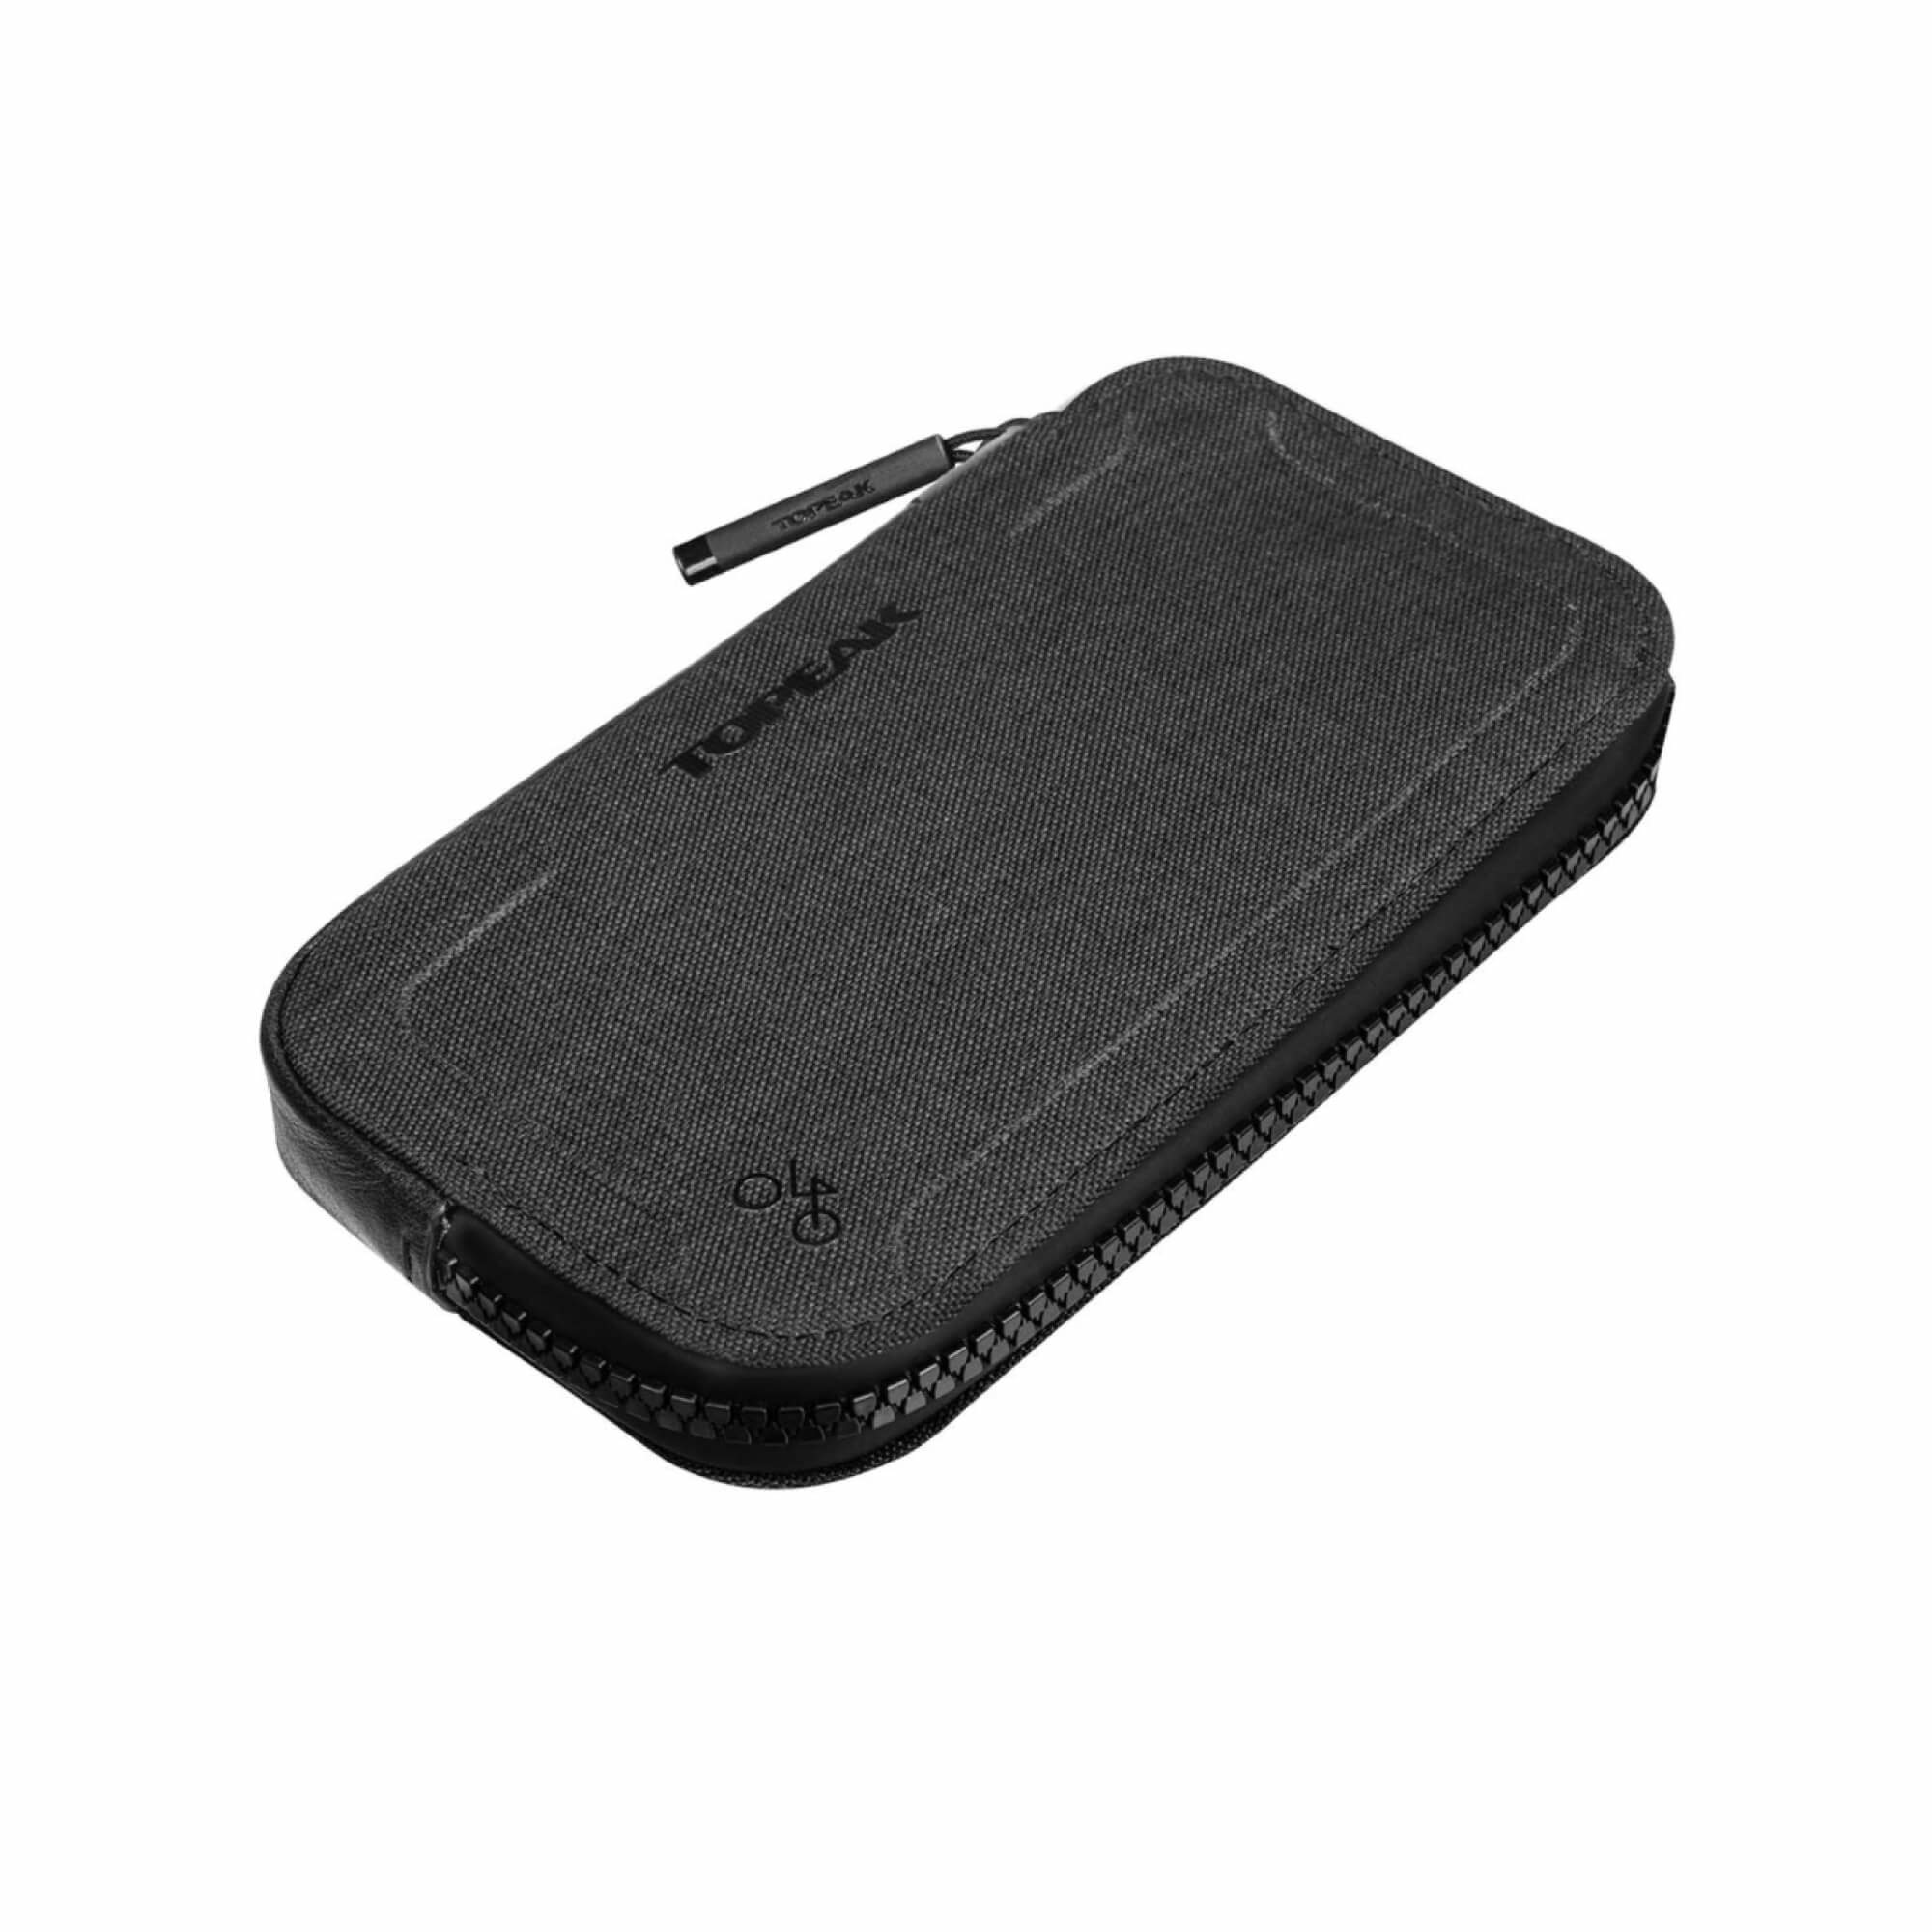 "Cycling Wallet 4.7"", Black-3"